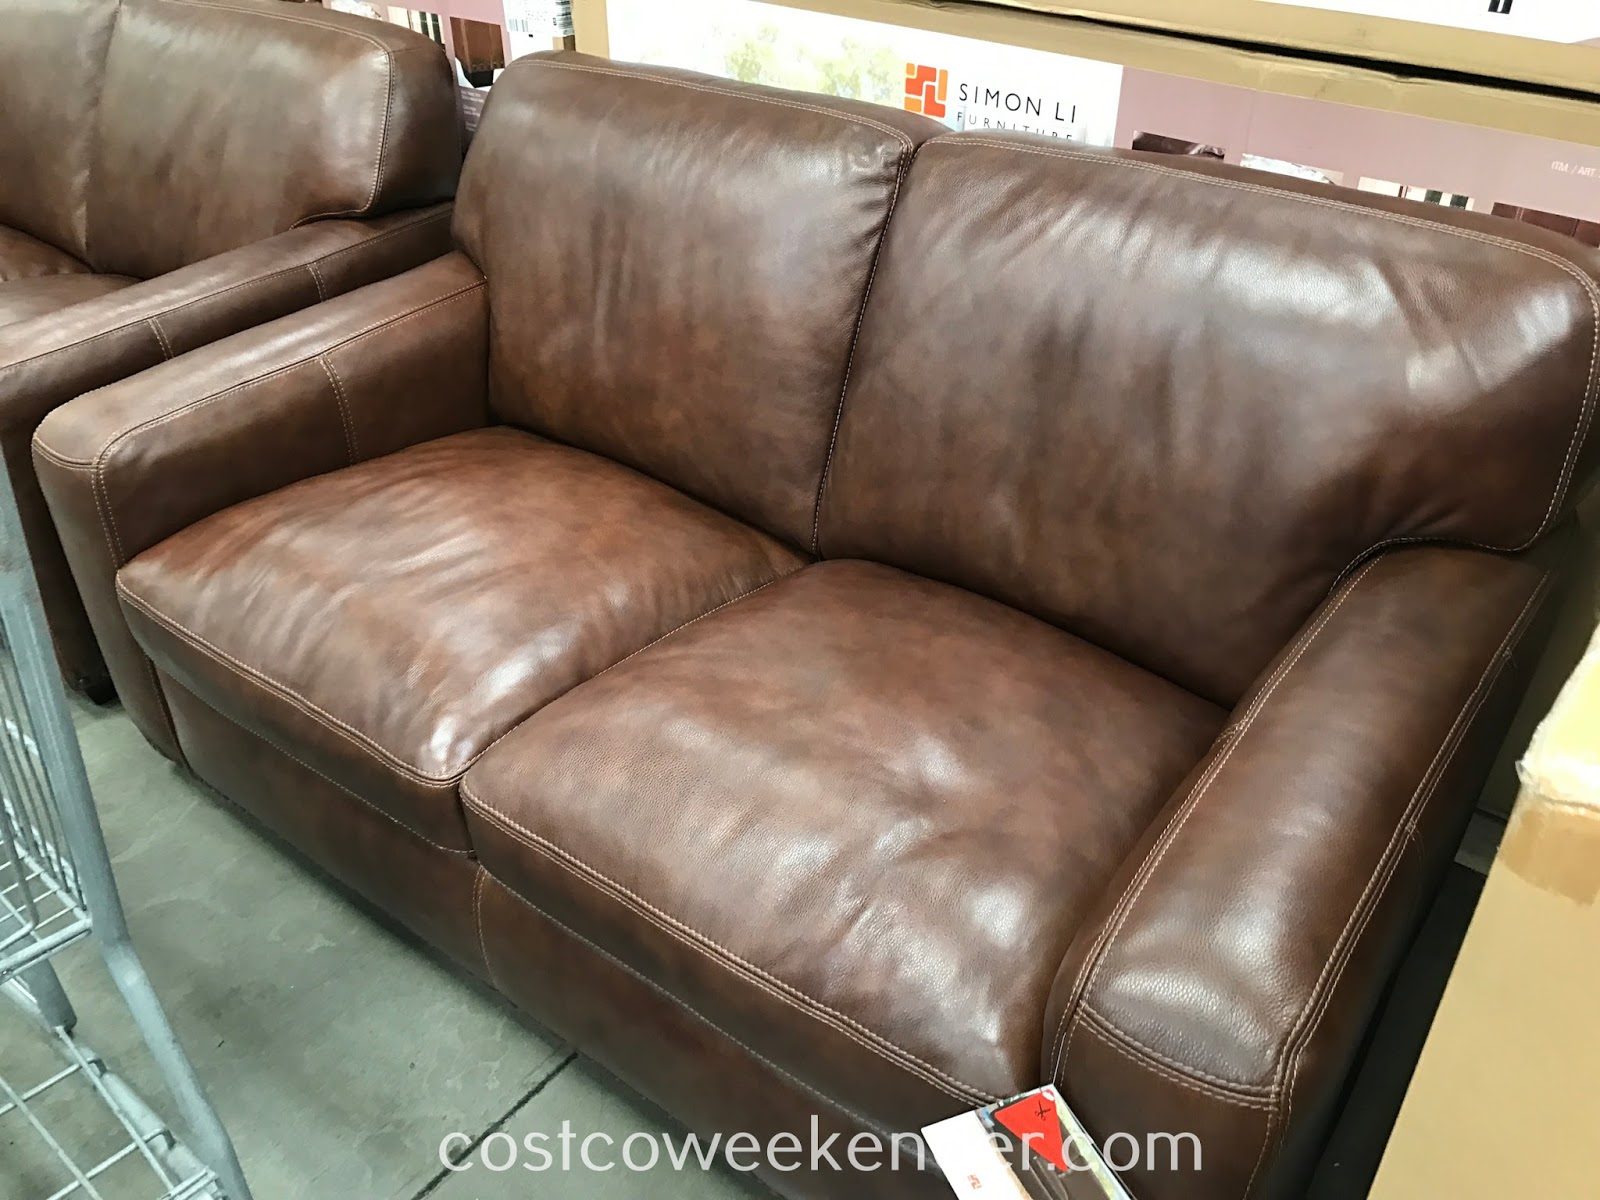 Simon Li Leather Loveseat: perfect for you and your loved one